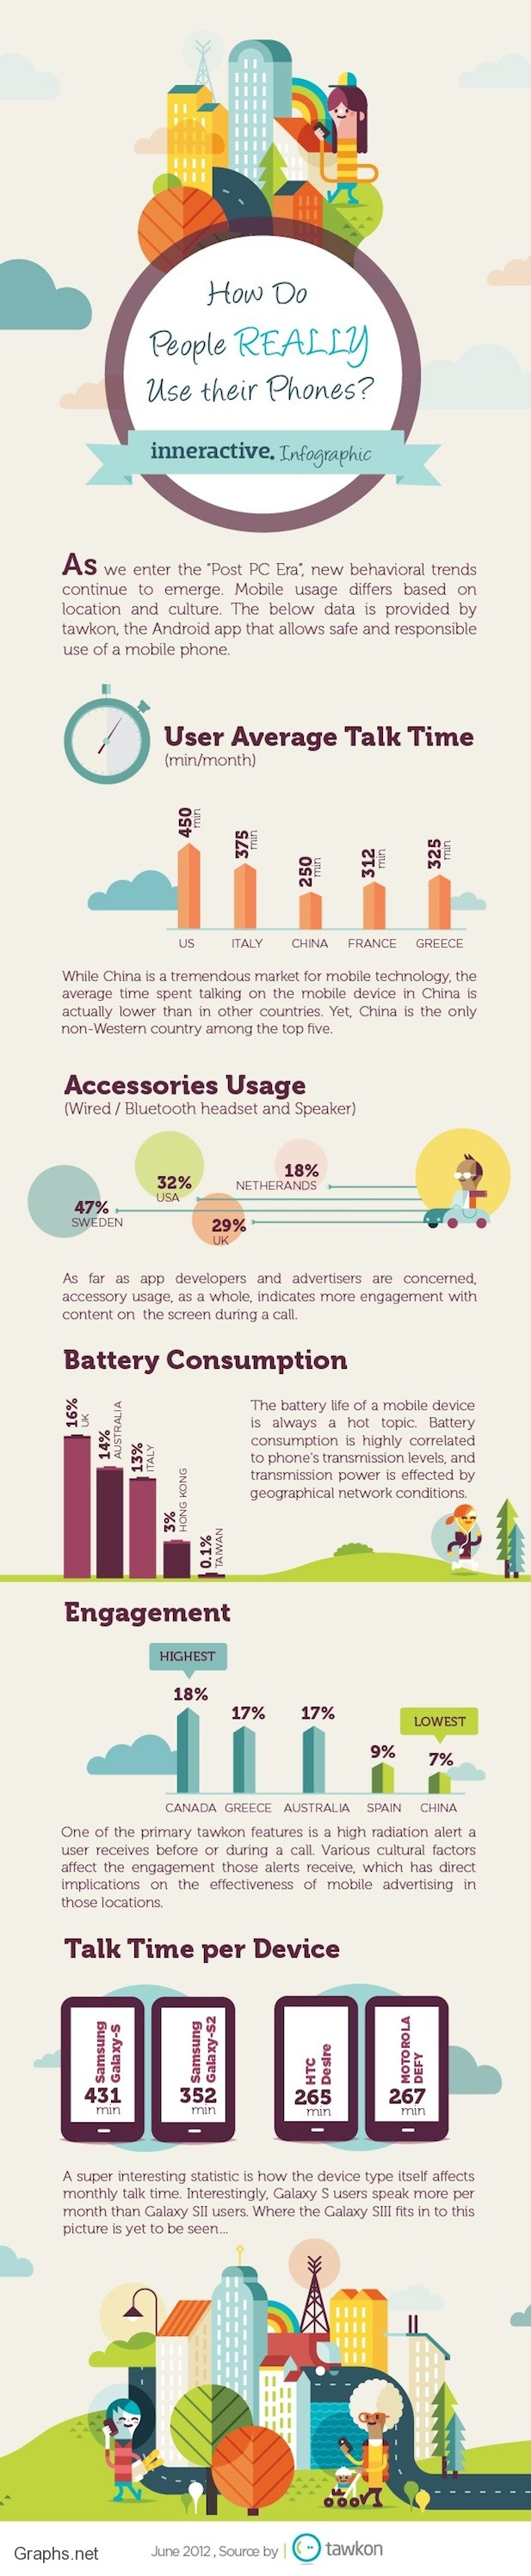 The Mobile Phone usage